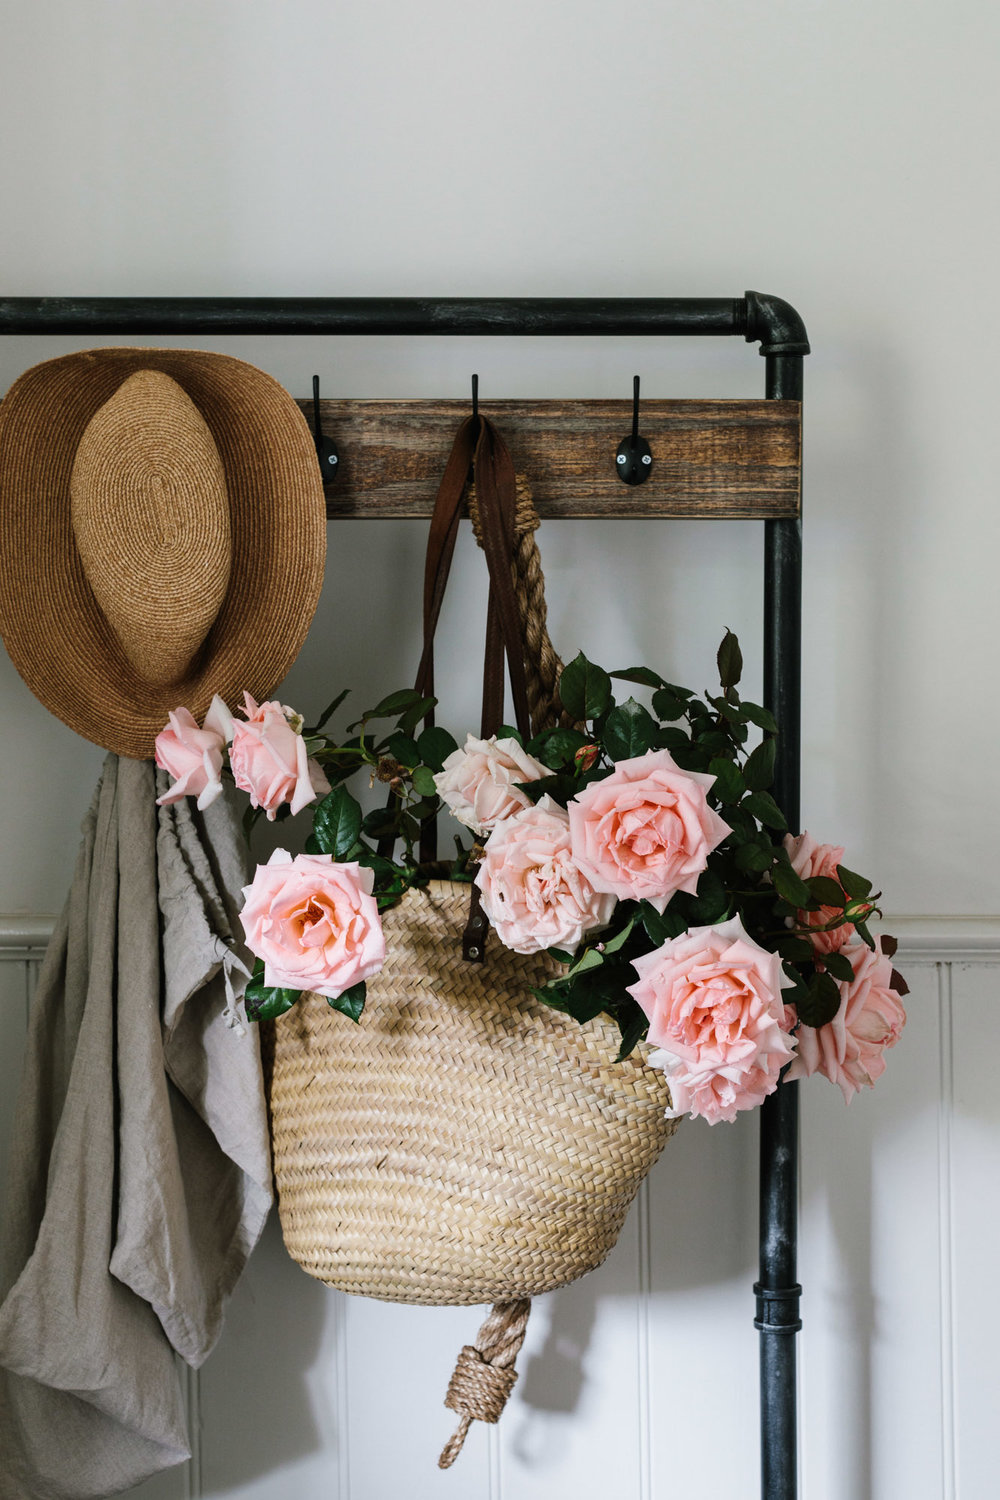 Marnie Hawson, Melbourne purpose-driven photographer for Acre of Roses, Trentham. A sustainable flower farm and luxury country accommodation. Styled by Belle Hemming.